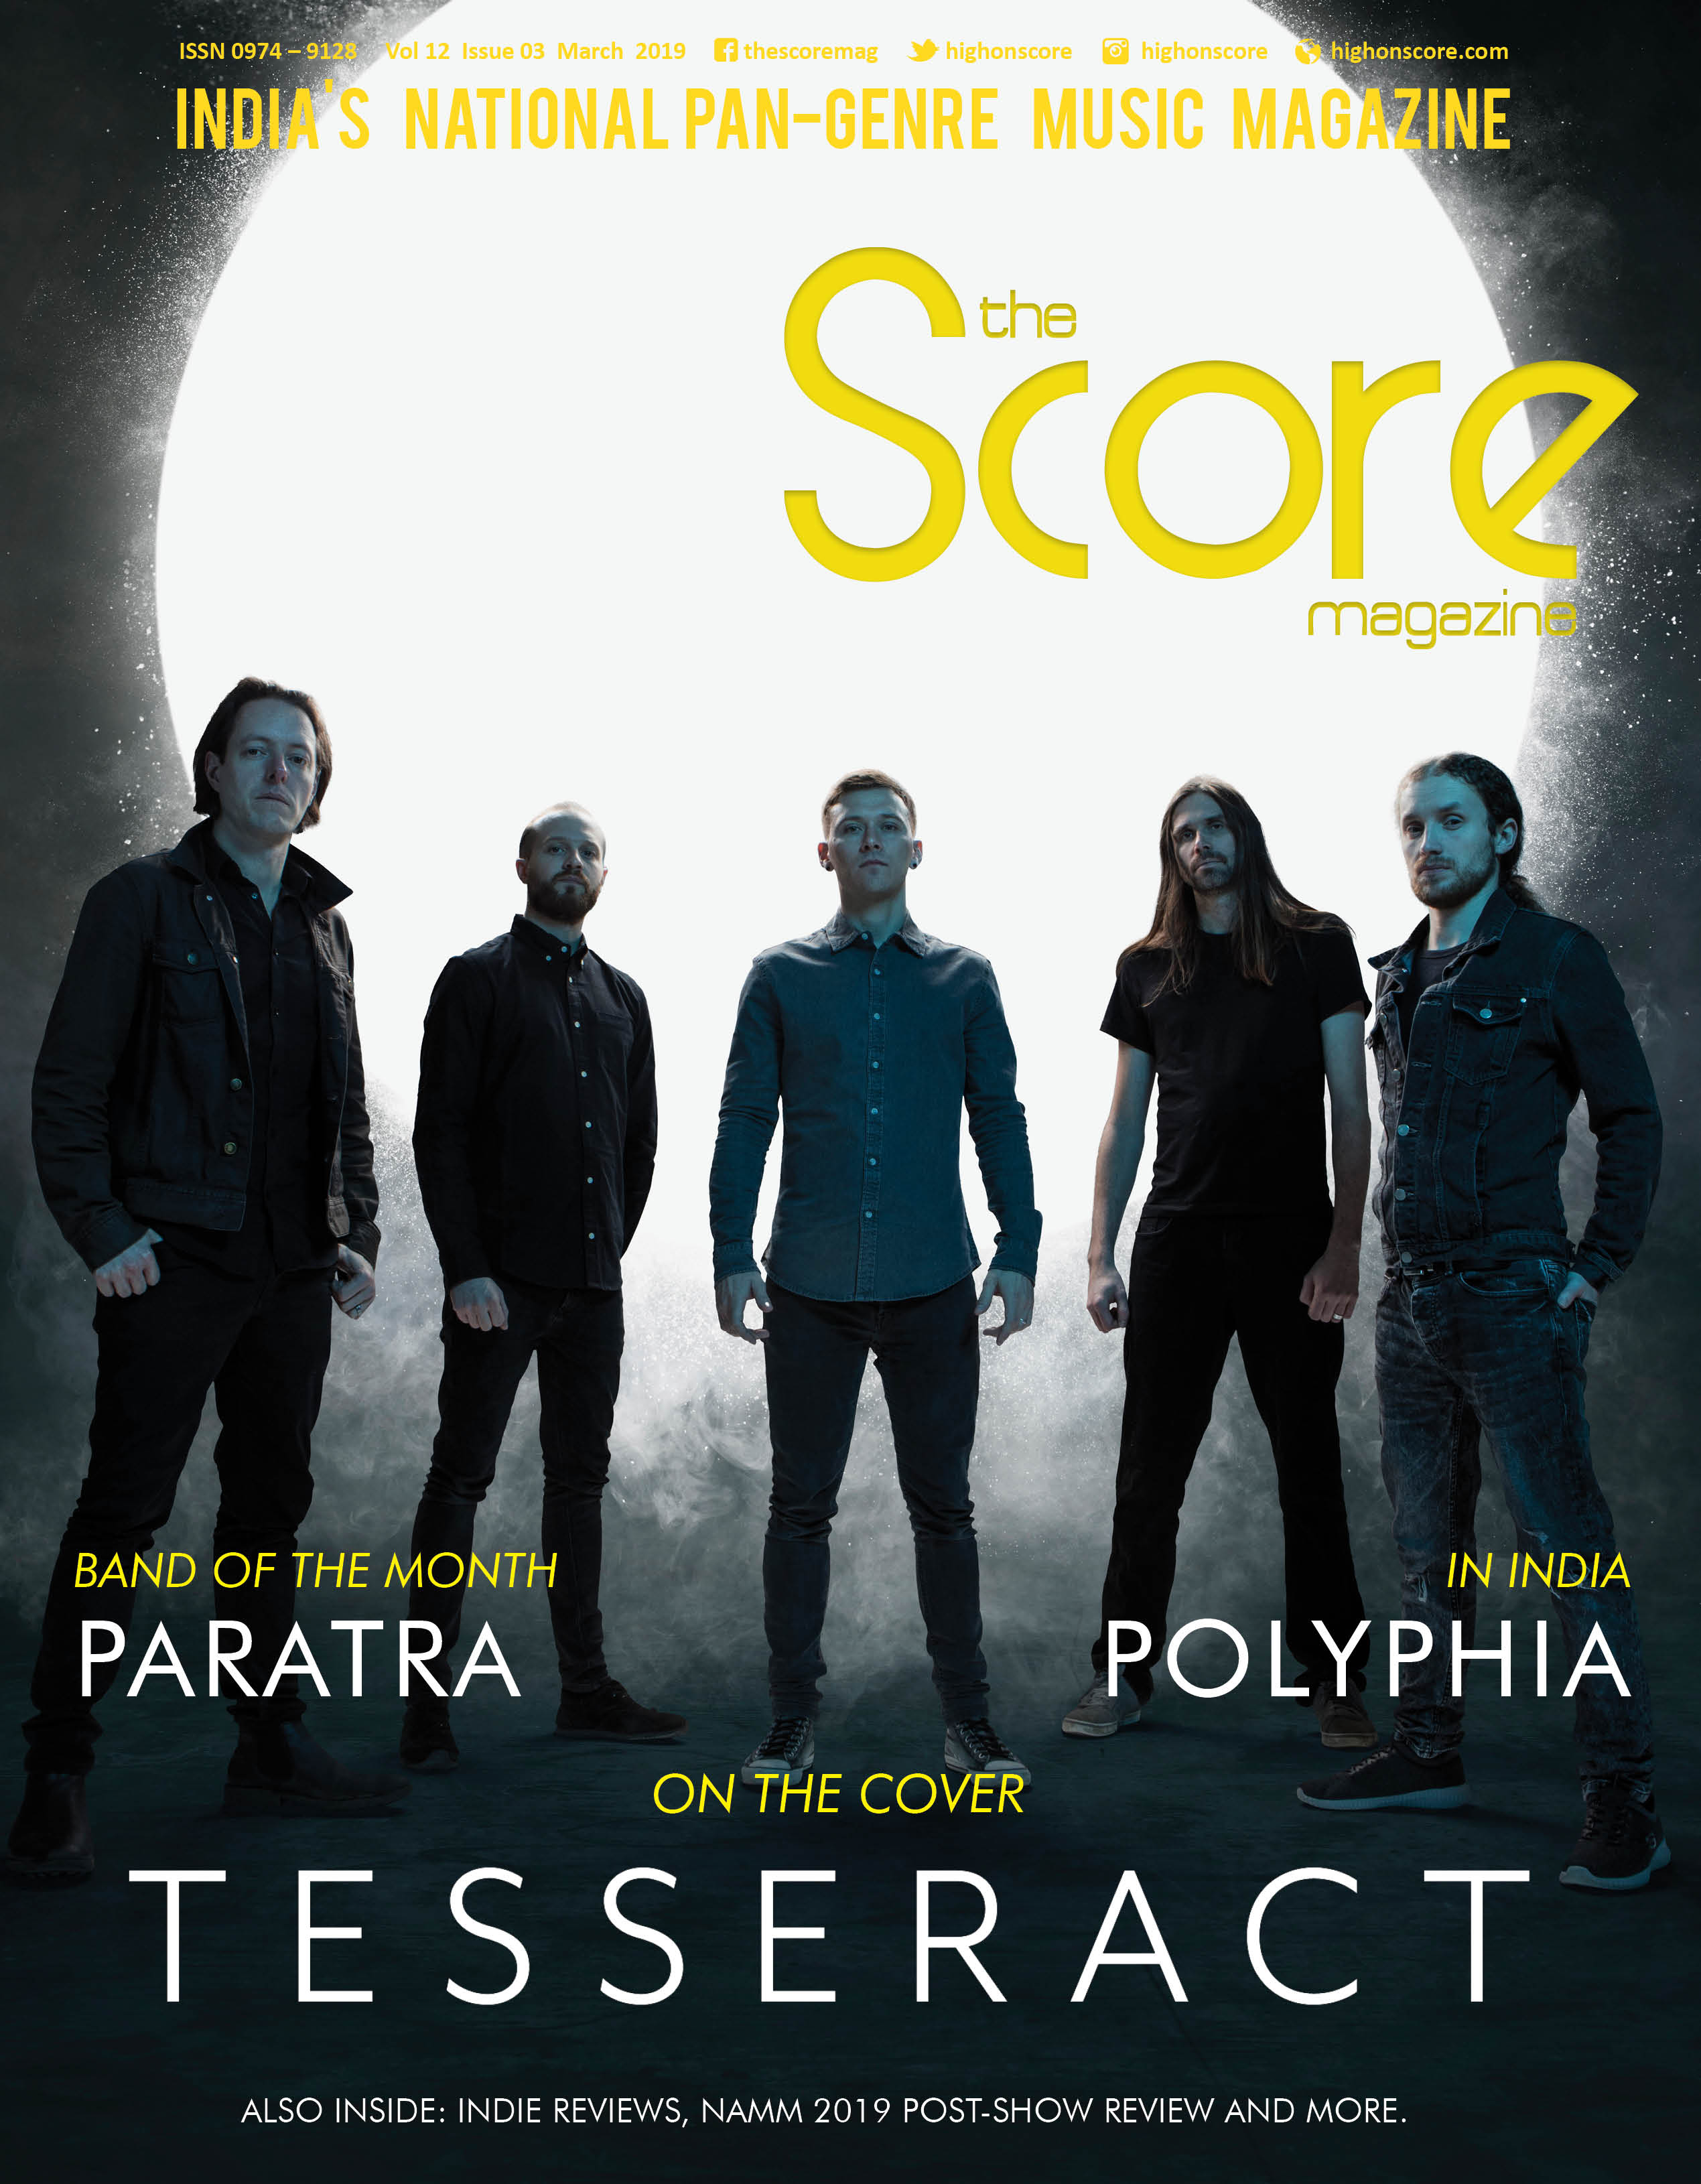 March 2019 issue featuring Tesseract on the cover!